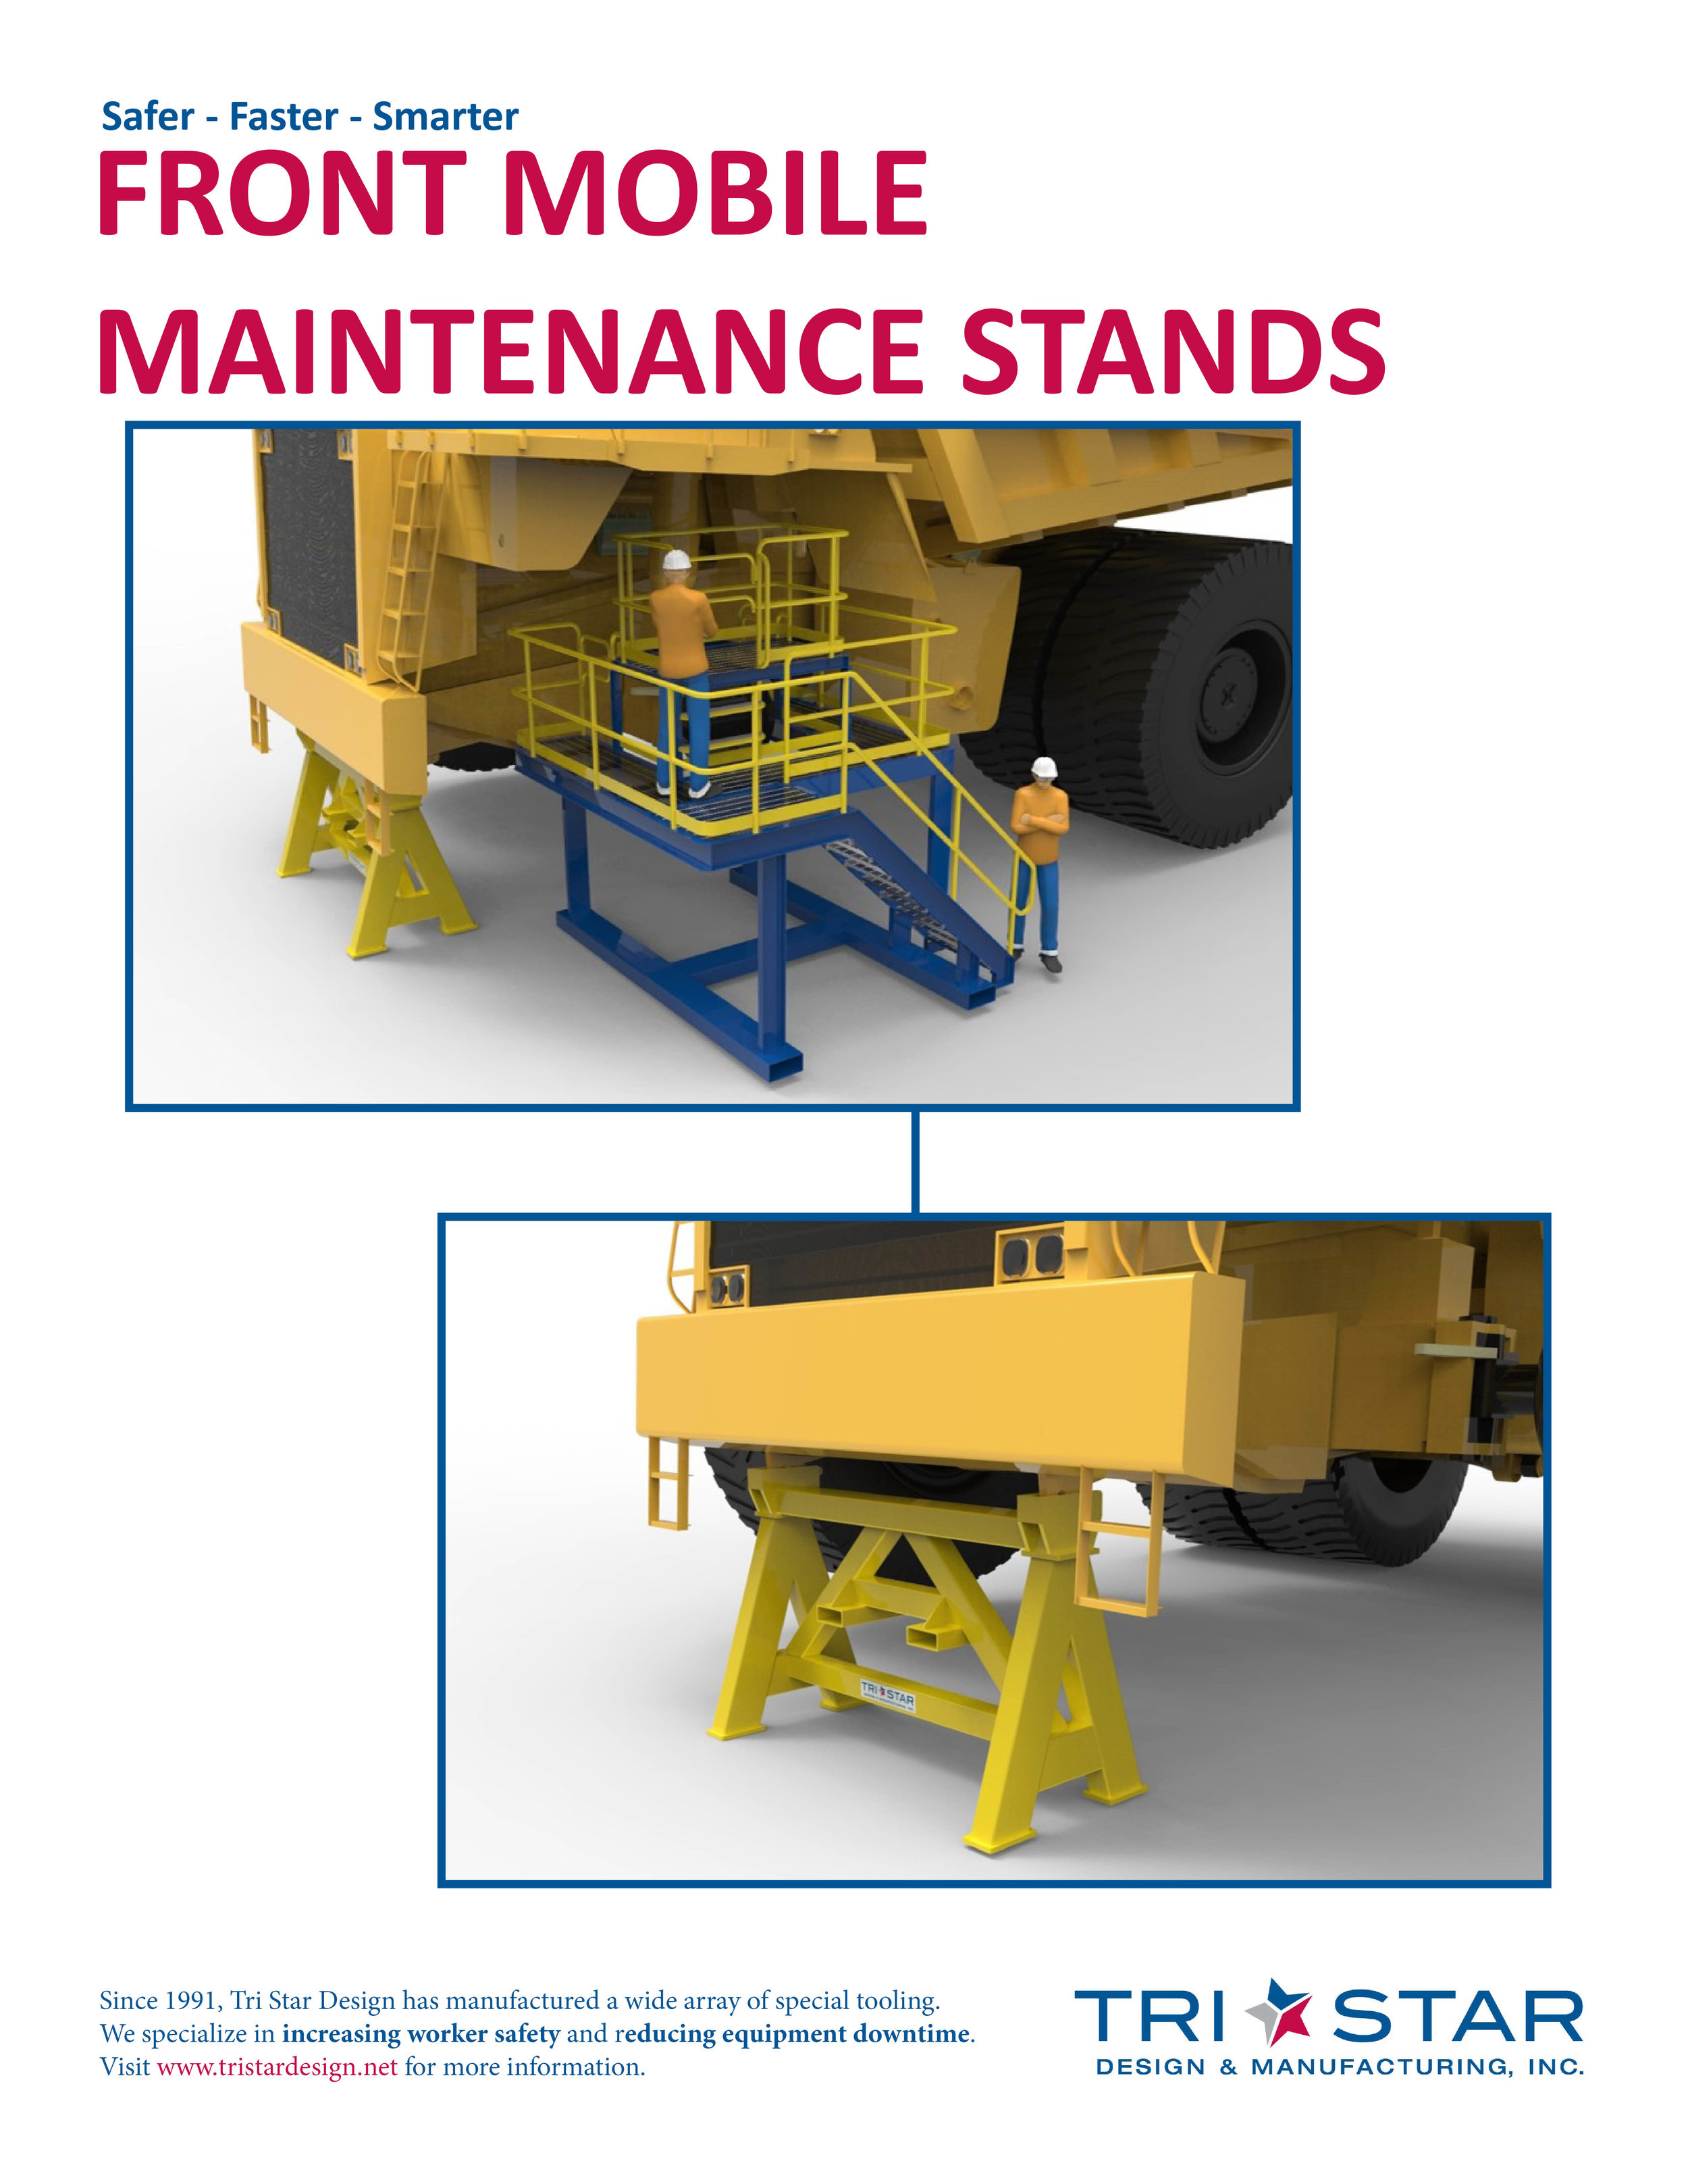 front mobile maintenance stand.jpg